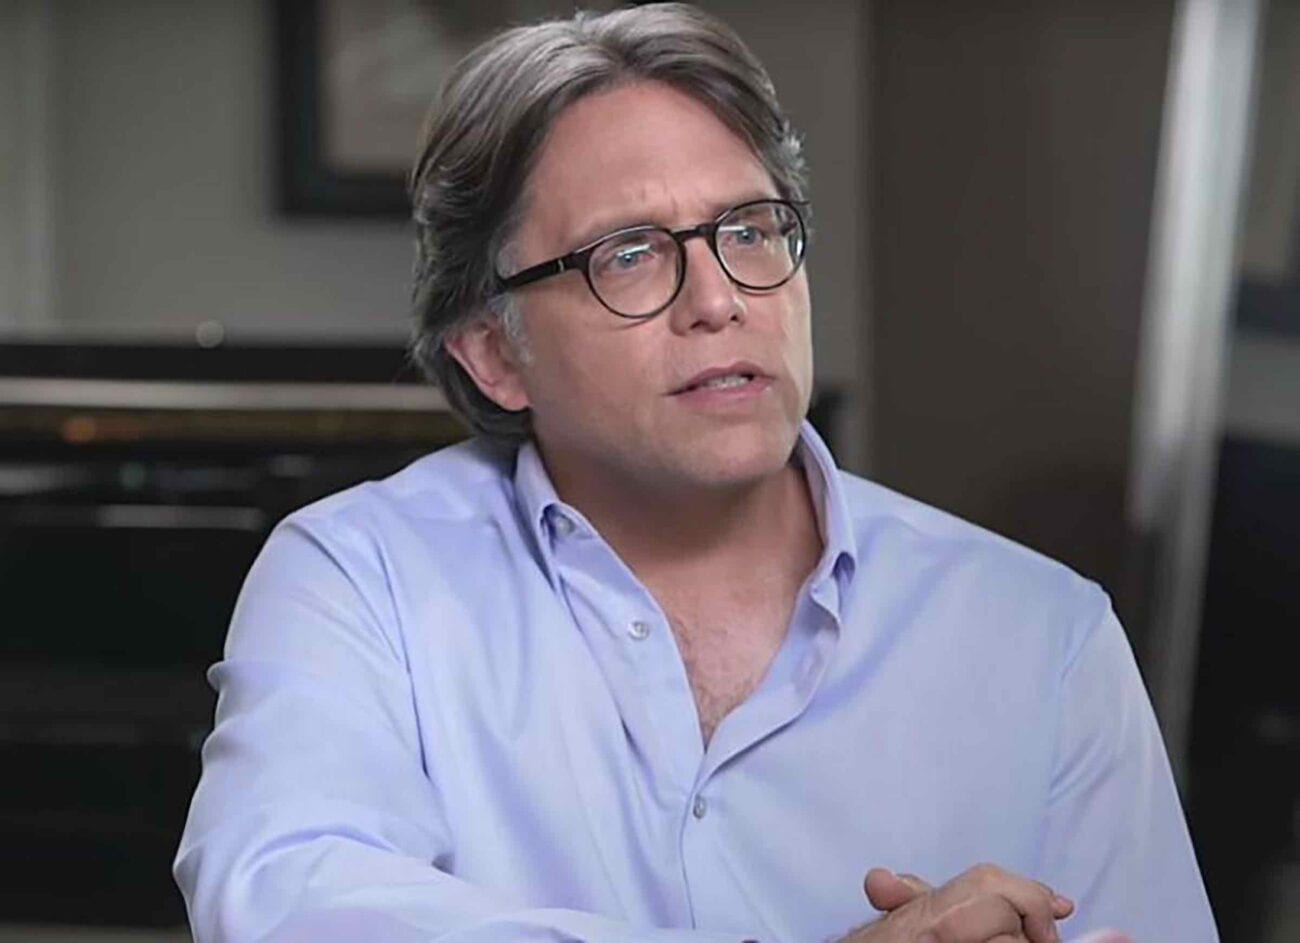 Who's still loyal to NXIVM? Learn who's still loyal to NXIVM leader Keith Raniere as he awaits sentencing later this month.